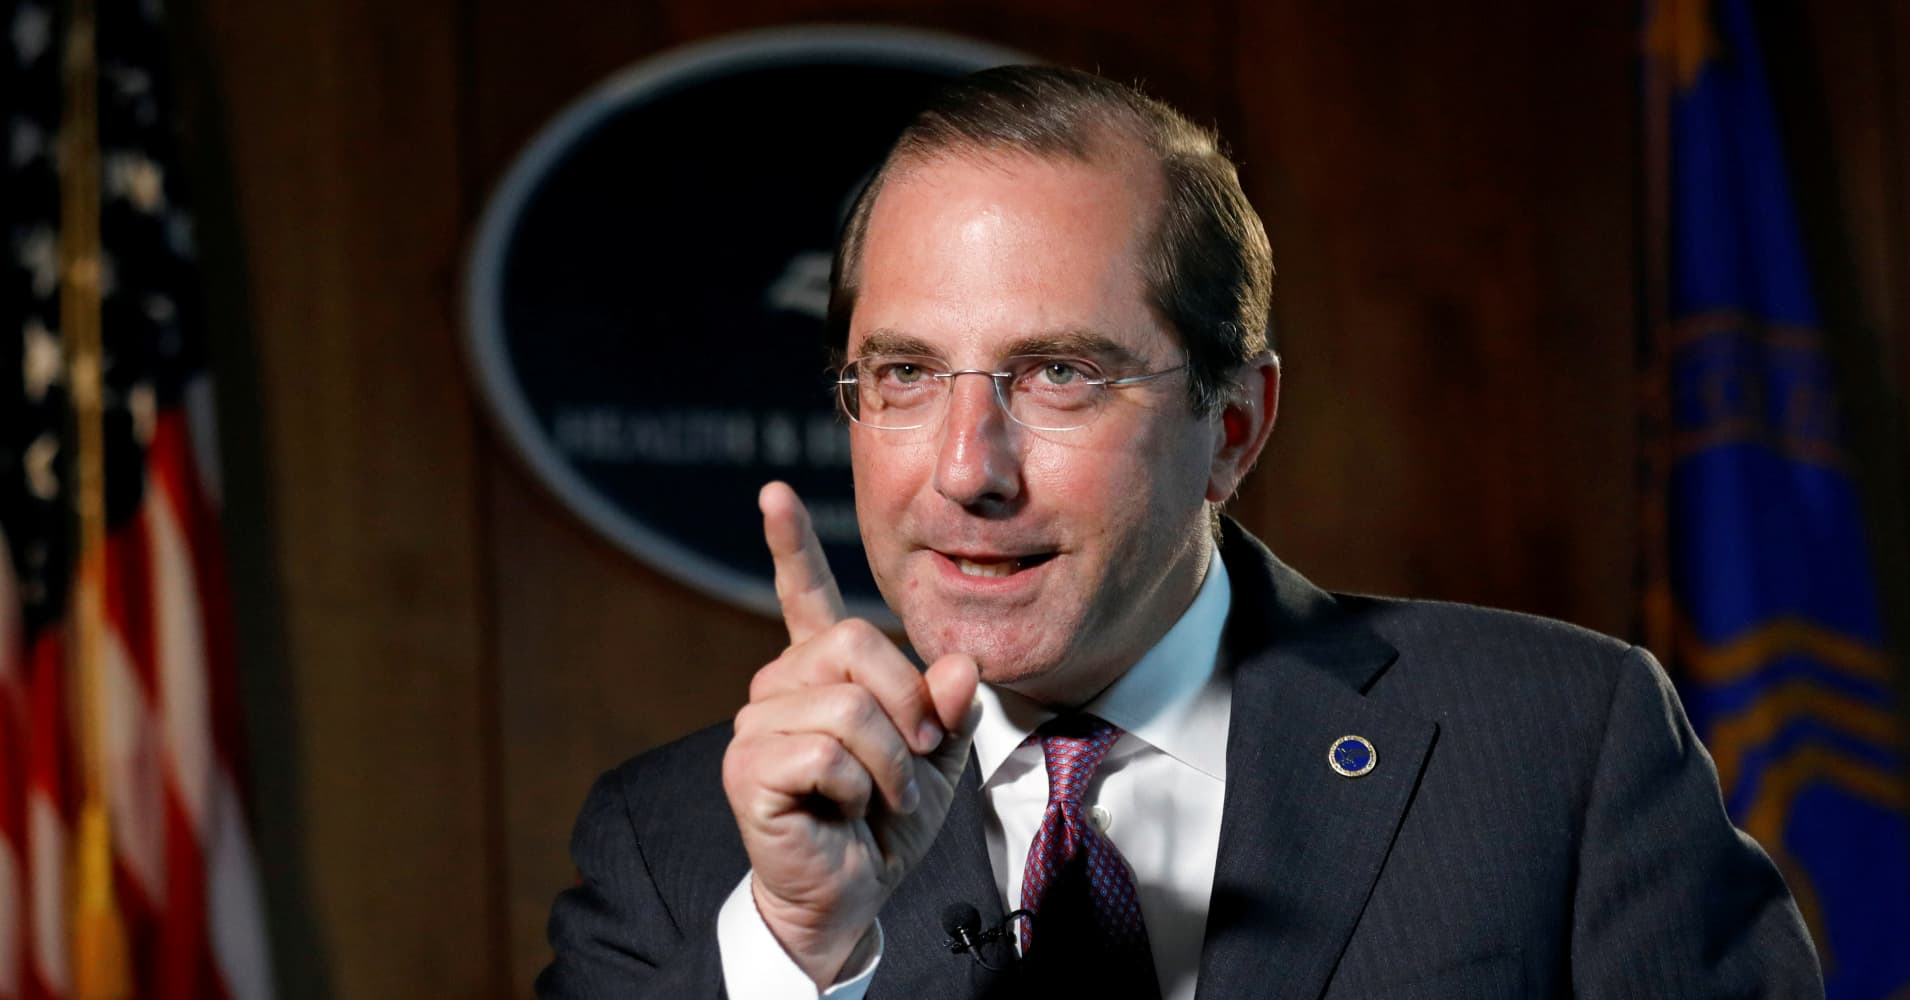 Health and Human Services Secretary Alex Azar speaks during an interview with Reuters in Washington, U.S., August 17, 2018.